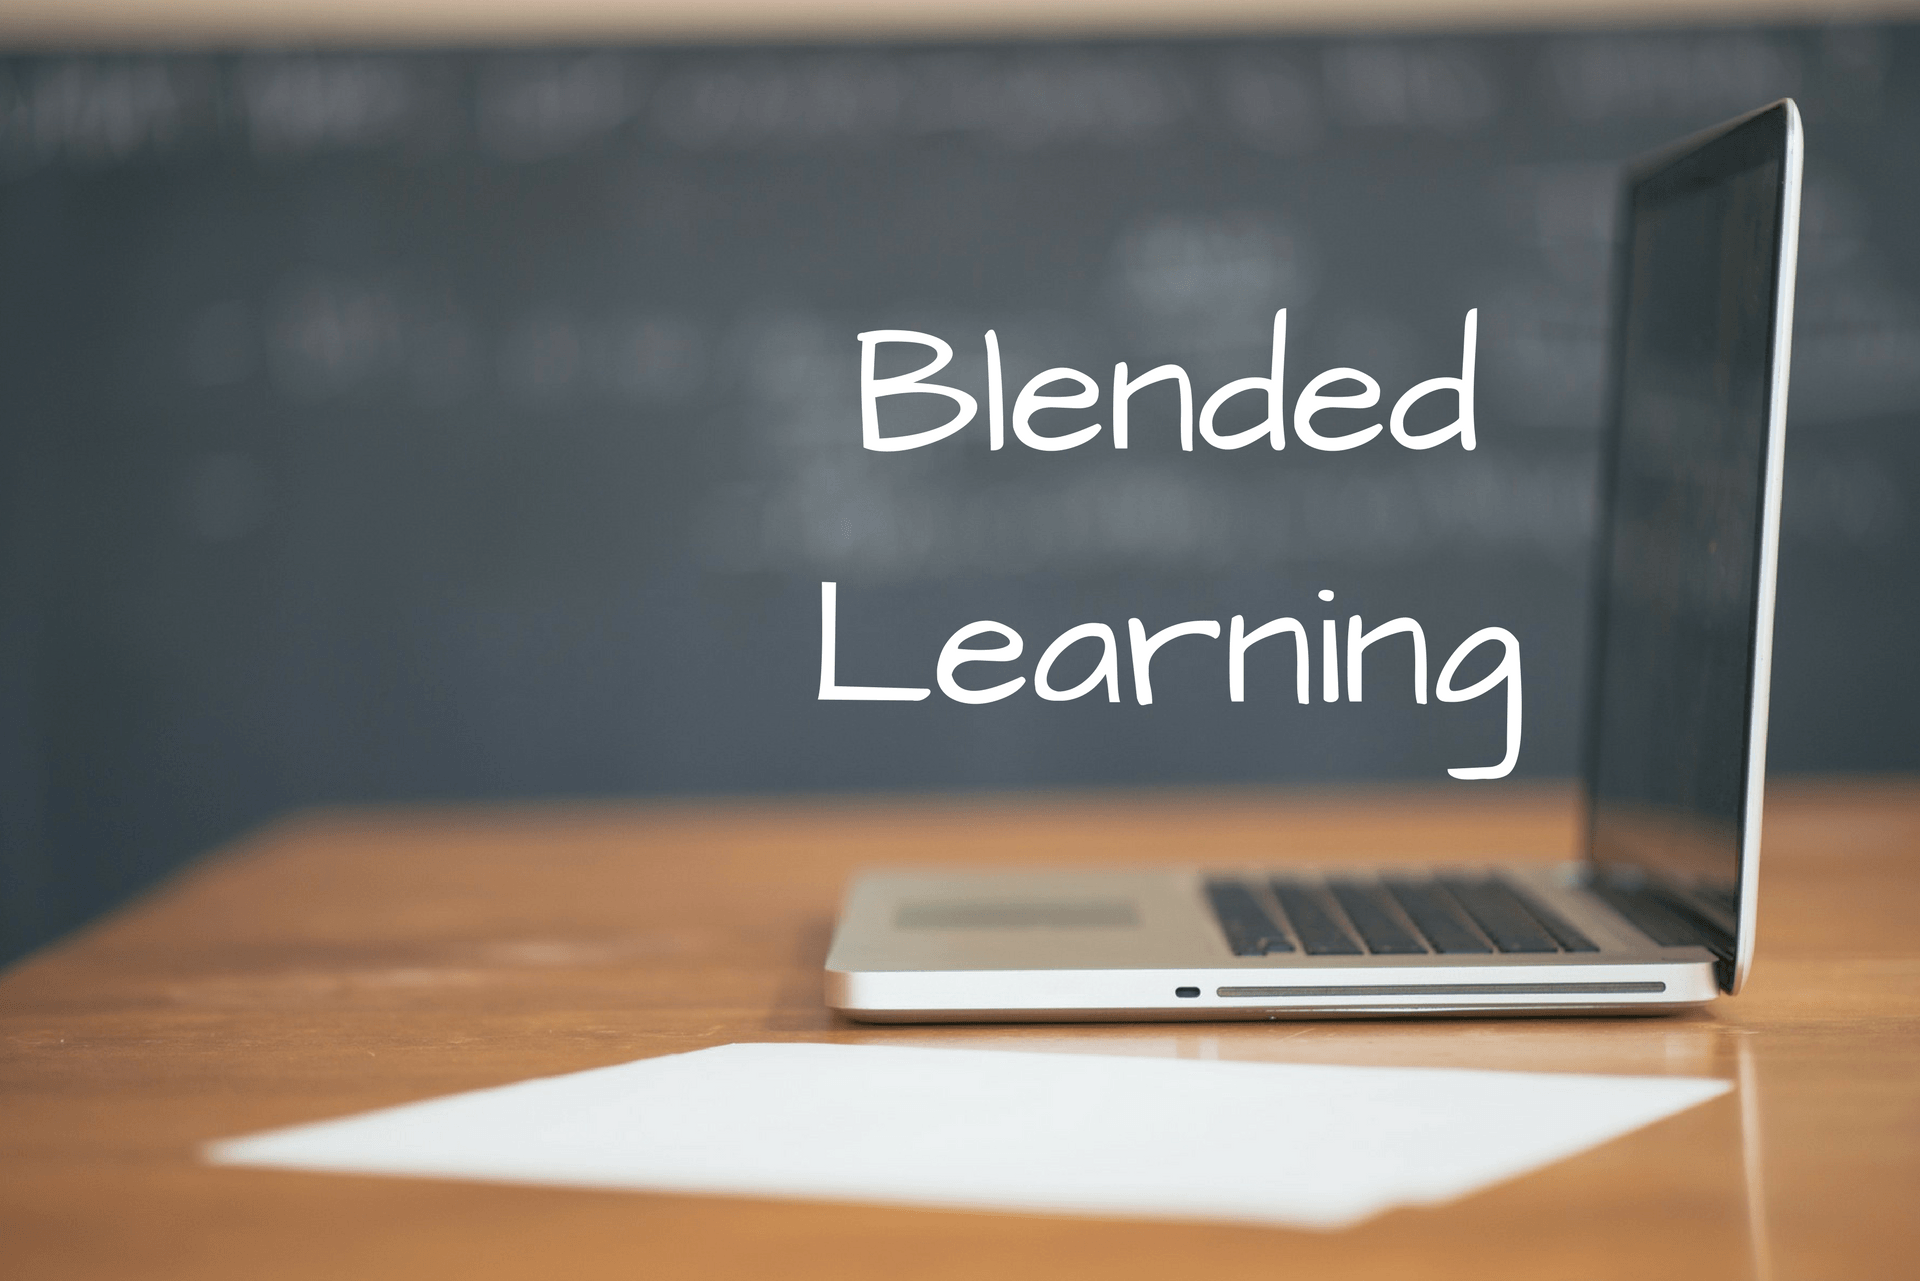 What is Blended Learning? and How to apply it?